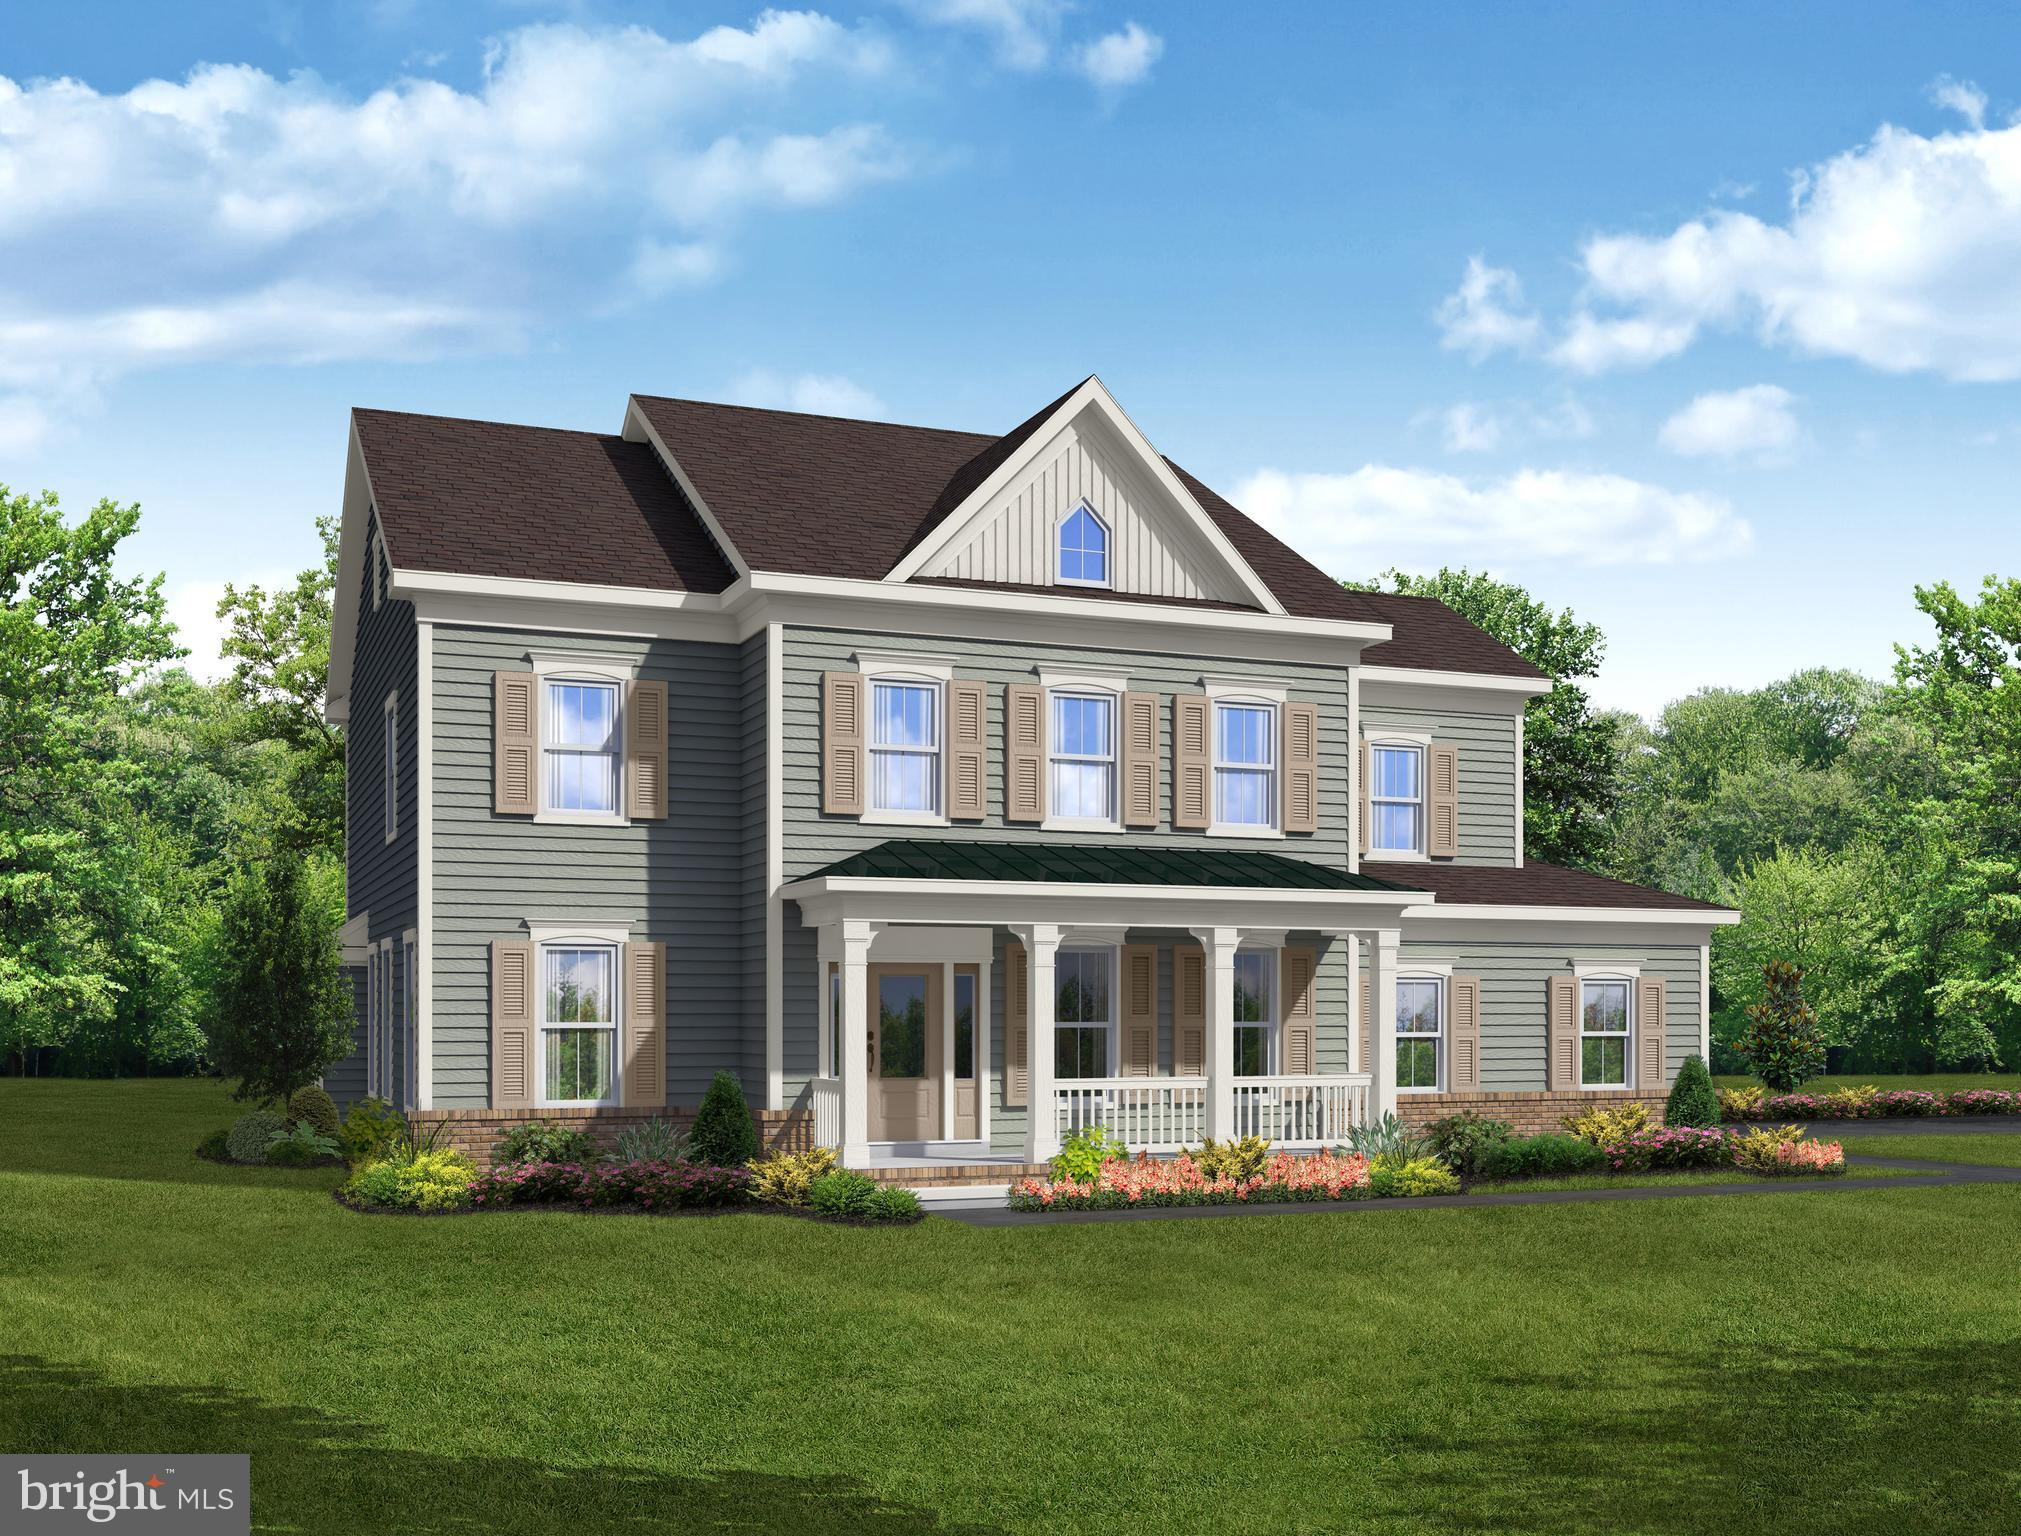 Our Carter Presidential Series Model. 4 bedrooms, 2.5 bathrooms, 3166 square feet standard. Options include 6' family room extension, sunroom, inlaw suite, owners luxury bath, 3 car garage and finished basement. Starting from $436,900. This is a to be built home. Please visit Bayberryhomes.com to view interactive floorplan.